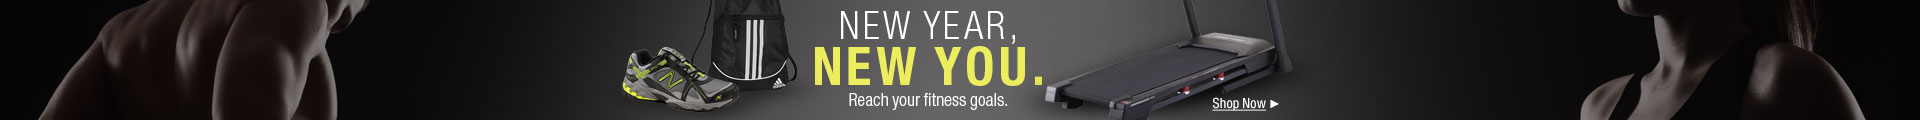 New year New You.